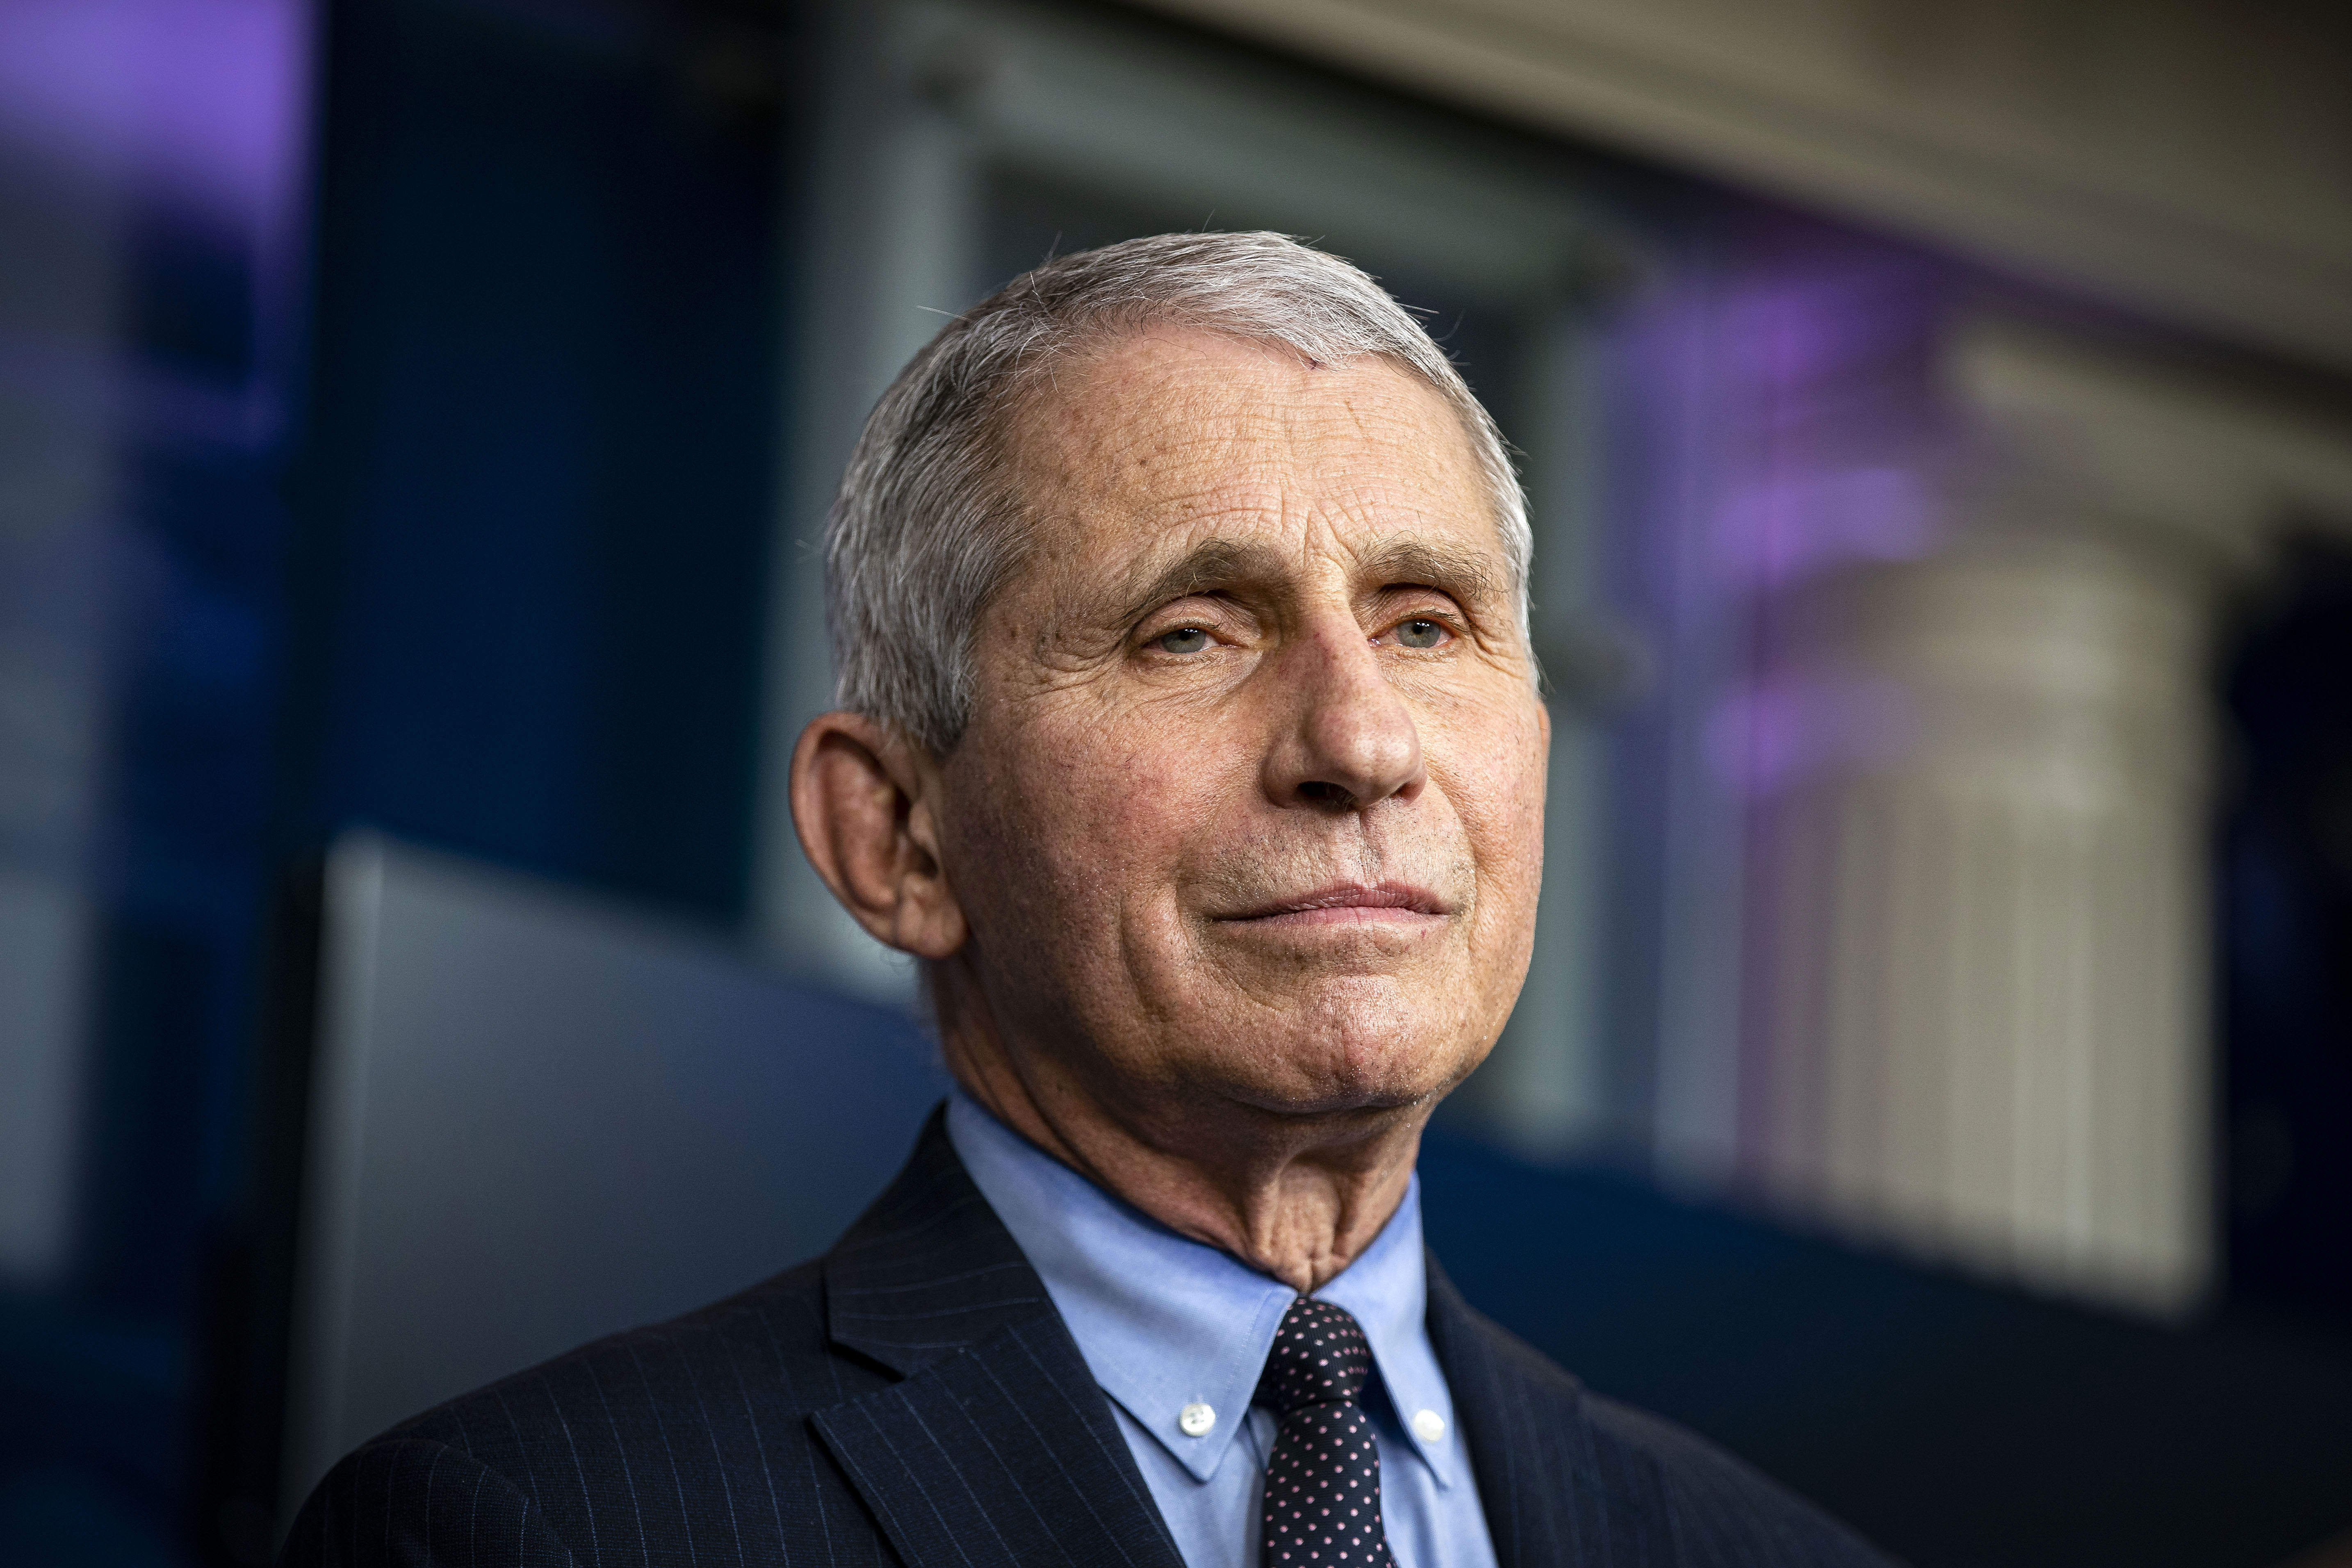 Dr. Anthony Fauci, director of the National Institute of Allergy and Infectious Diseases, listens during a news conference at the White House on January 21.